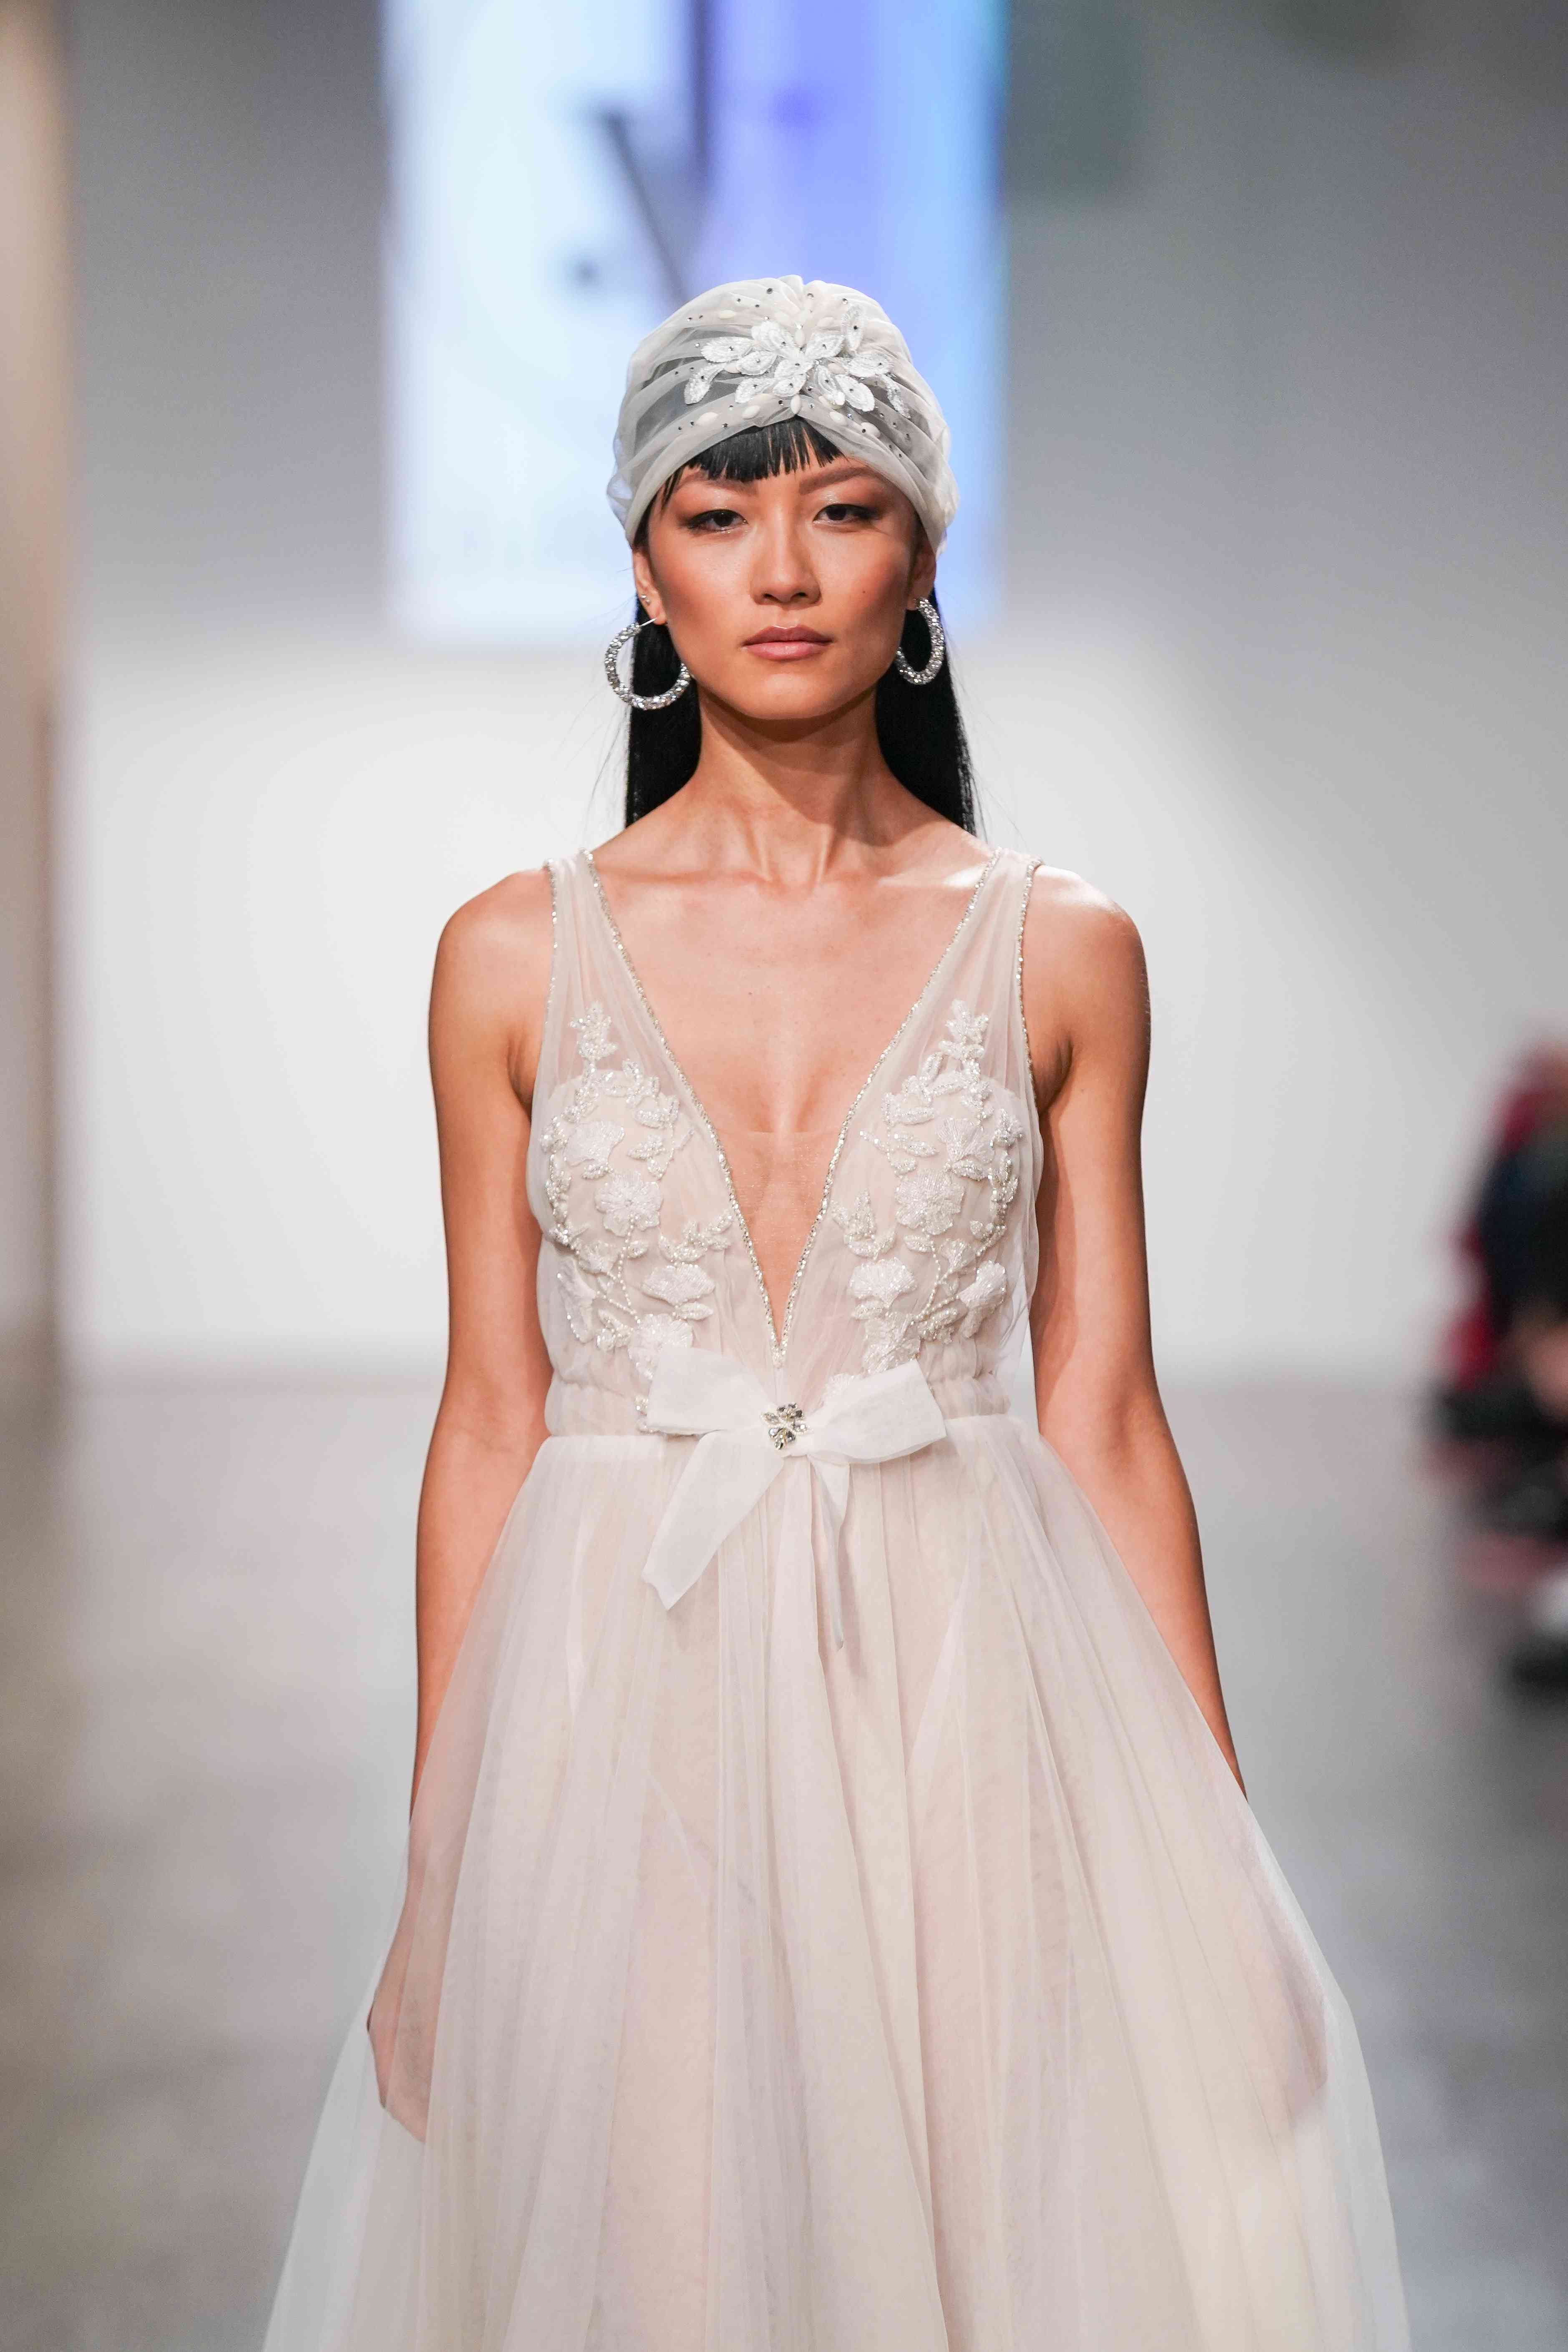 Model in sleeveless wedding dress with bow